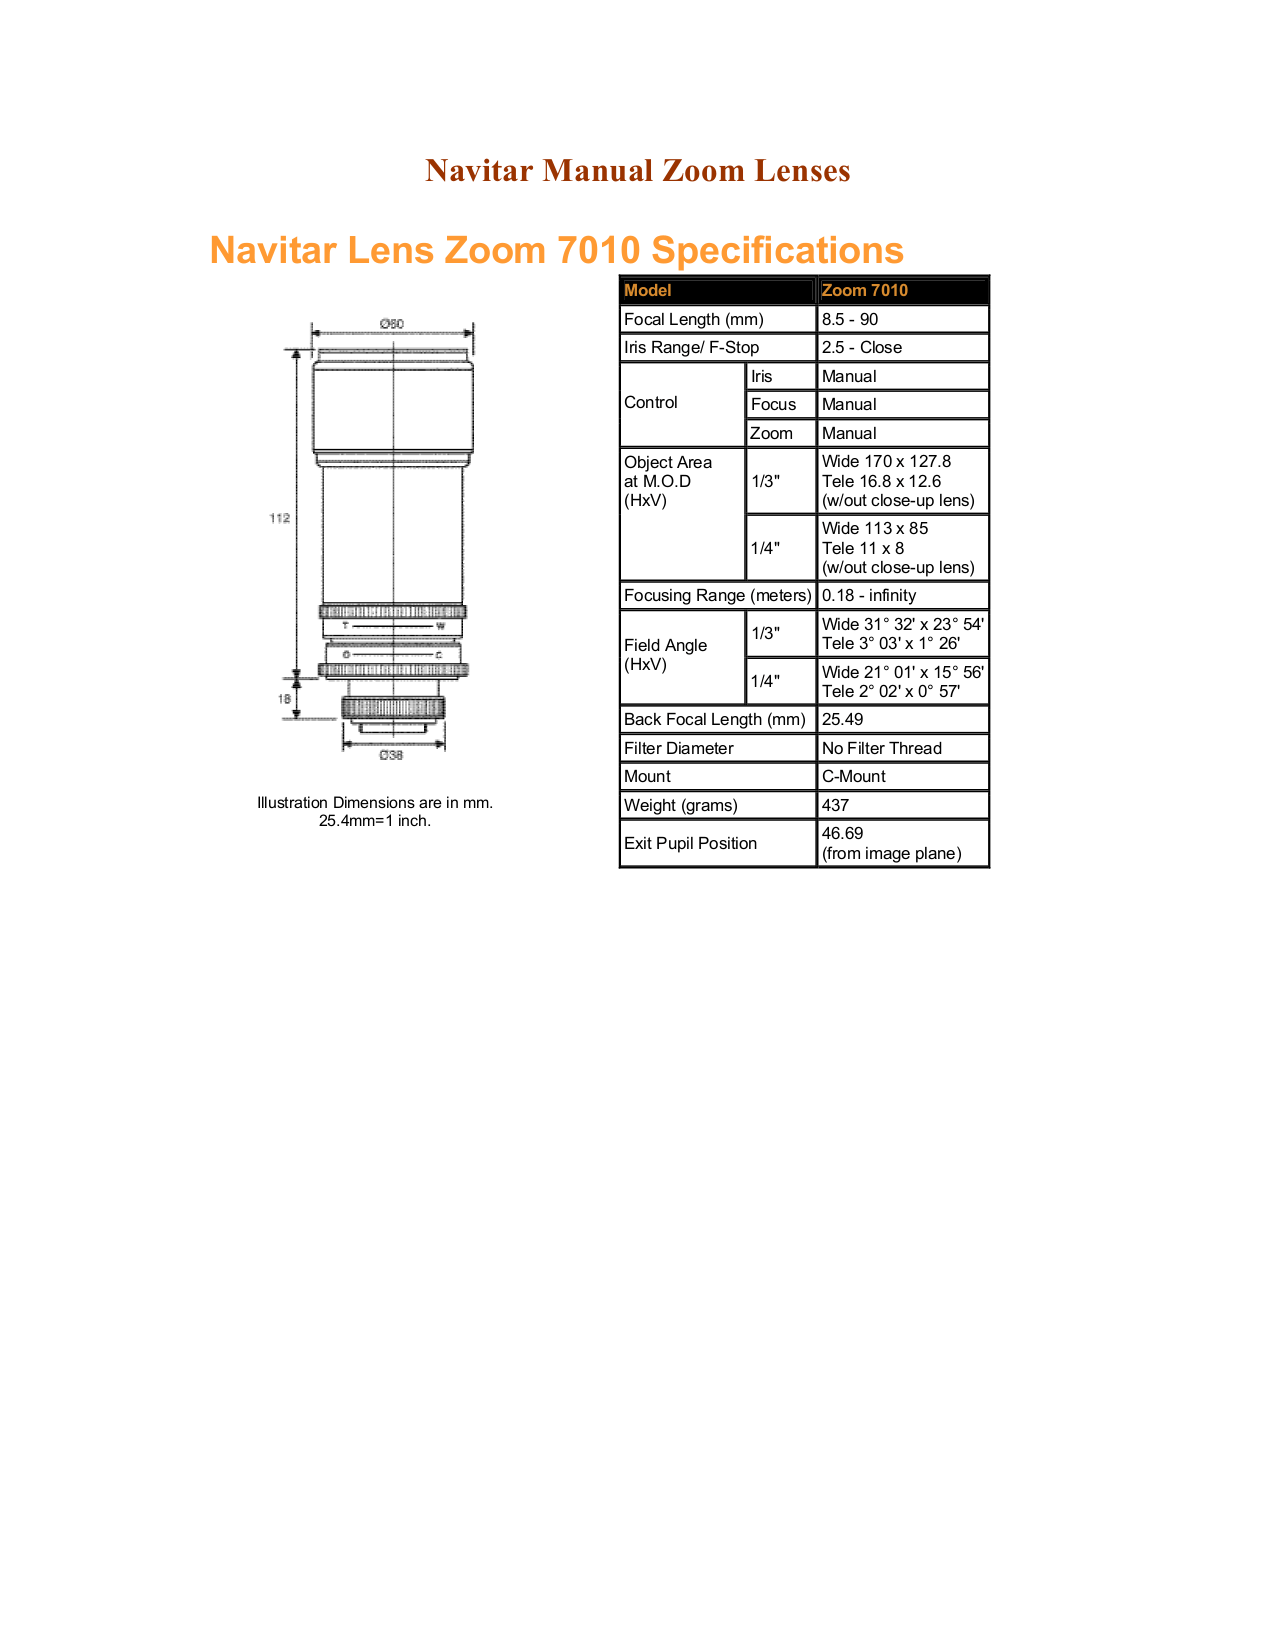 Download free pdf for Navitar Zoom 7000 Lens System Other